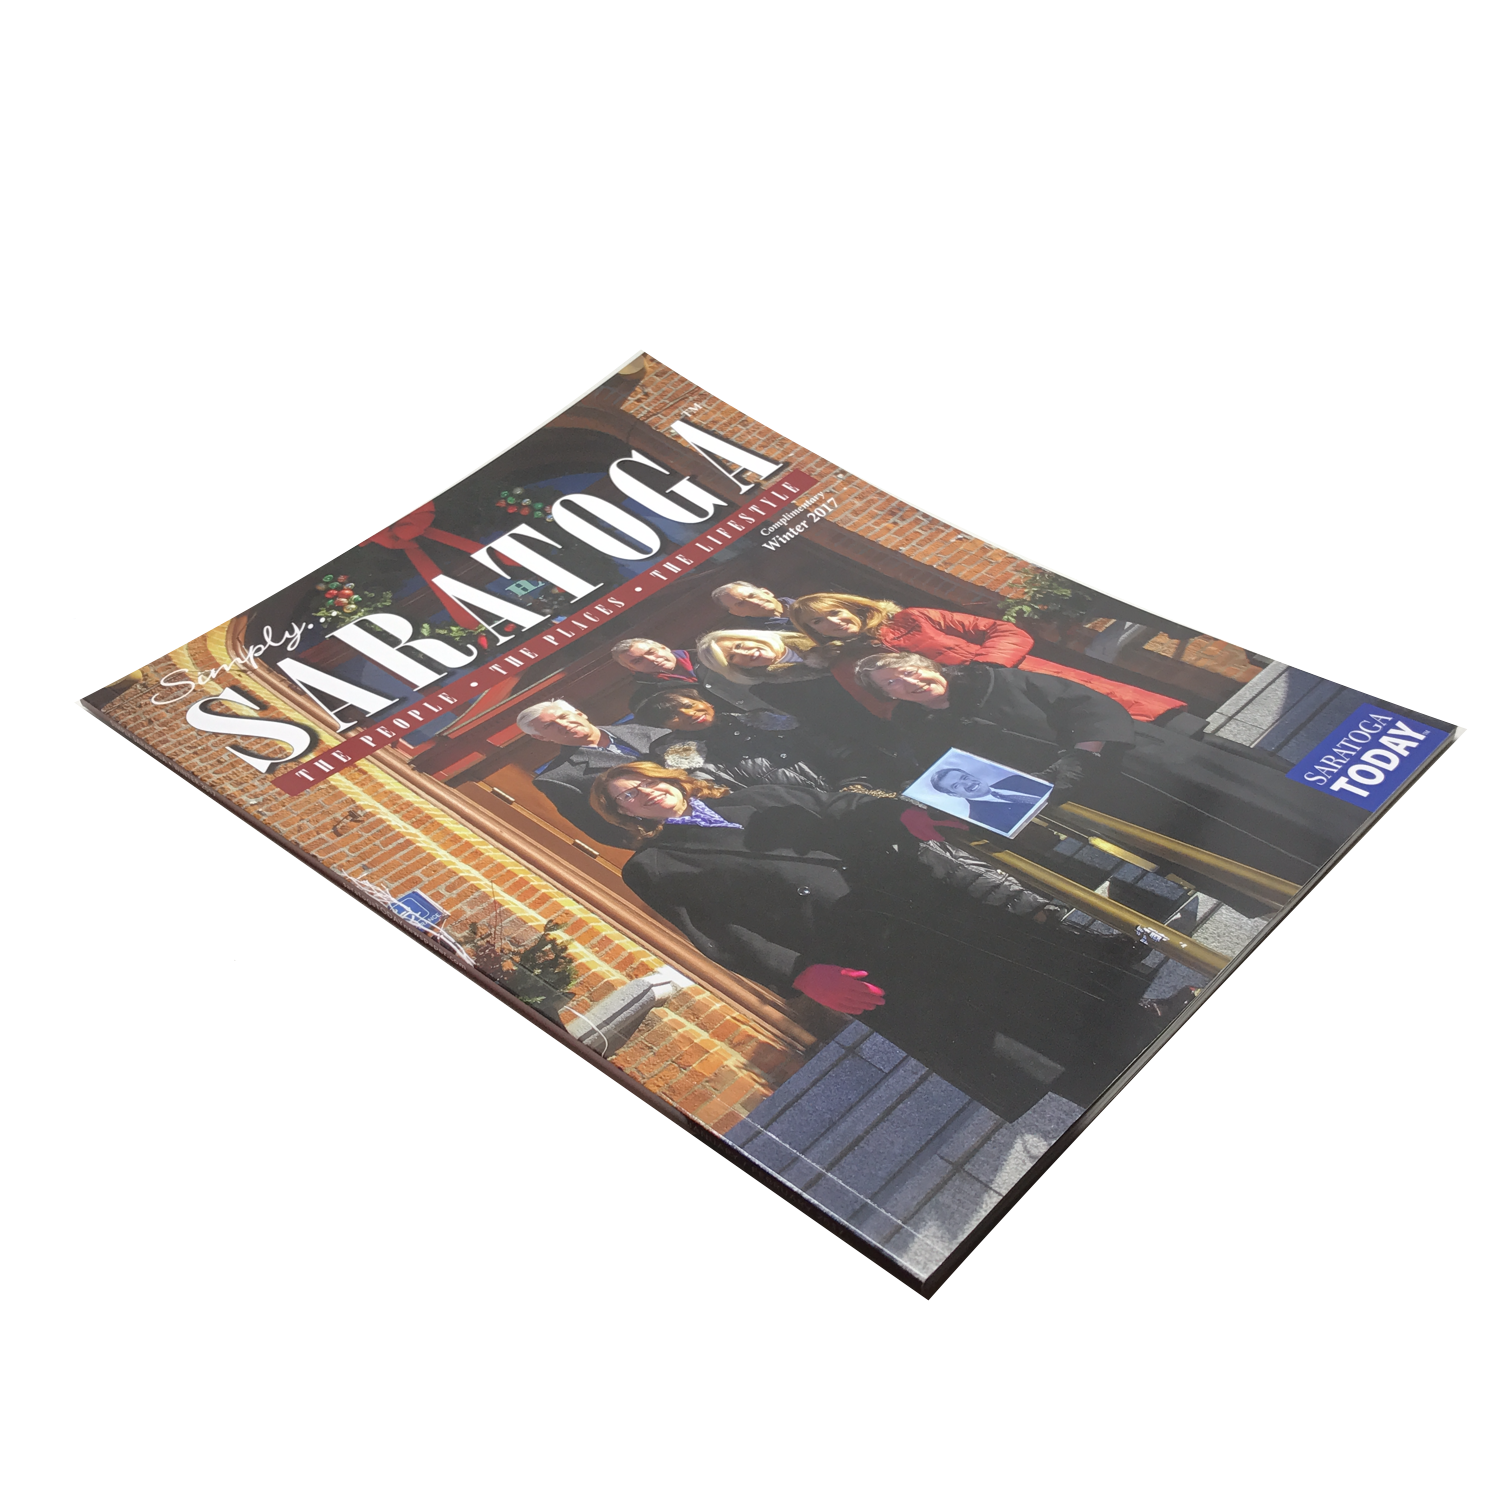 Available to include in each box for FREE, the latest issue of bi-monthly published Simply Saratoga Magazine! Each issue is complete with articles on the people, places, and lifestyle of Saratoga, a great way to be a part of Saratoga, no matter where you are!